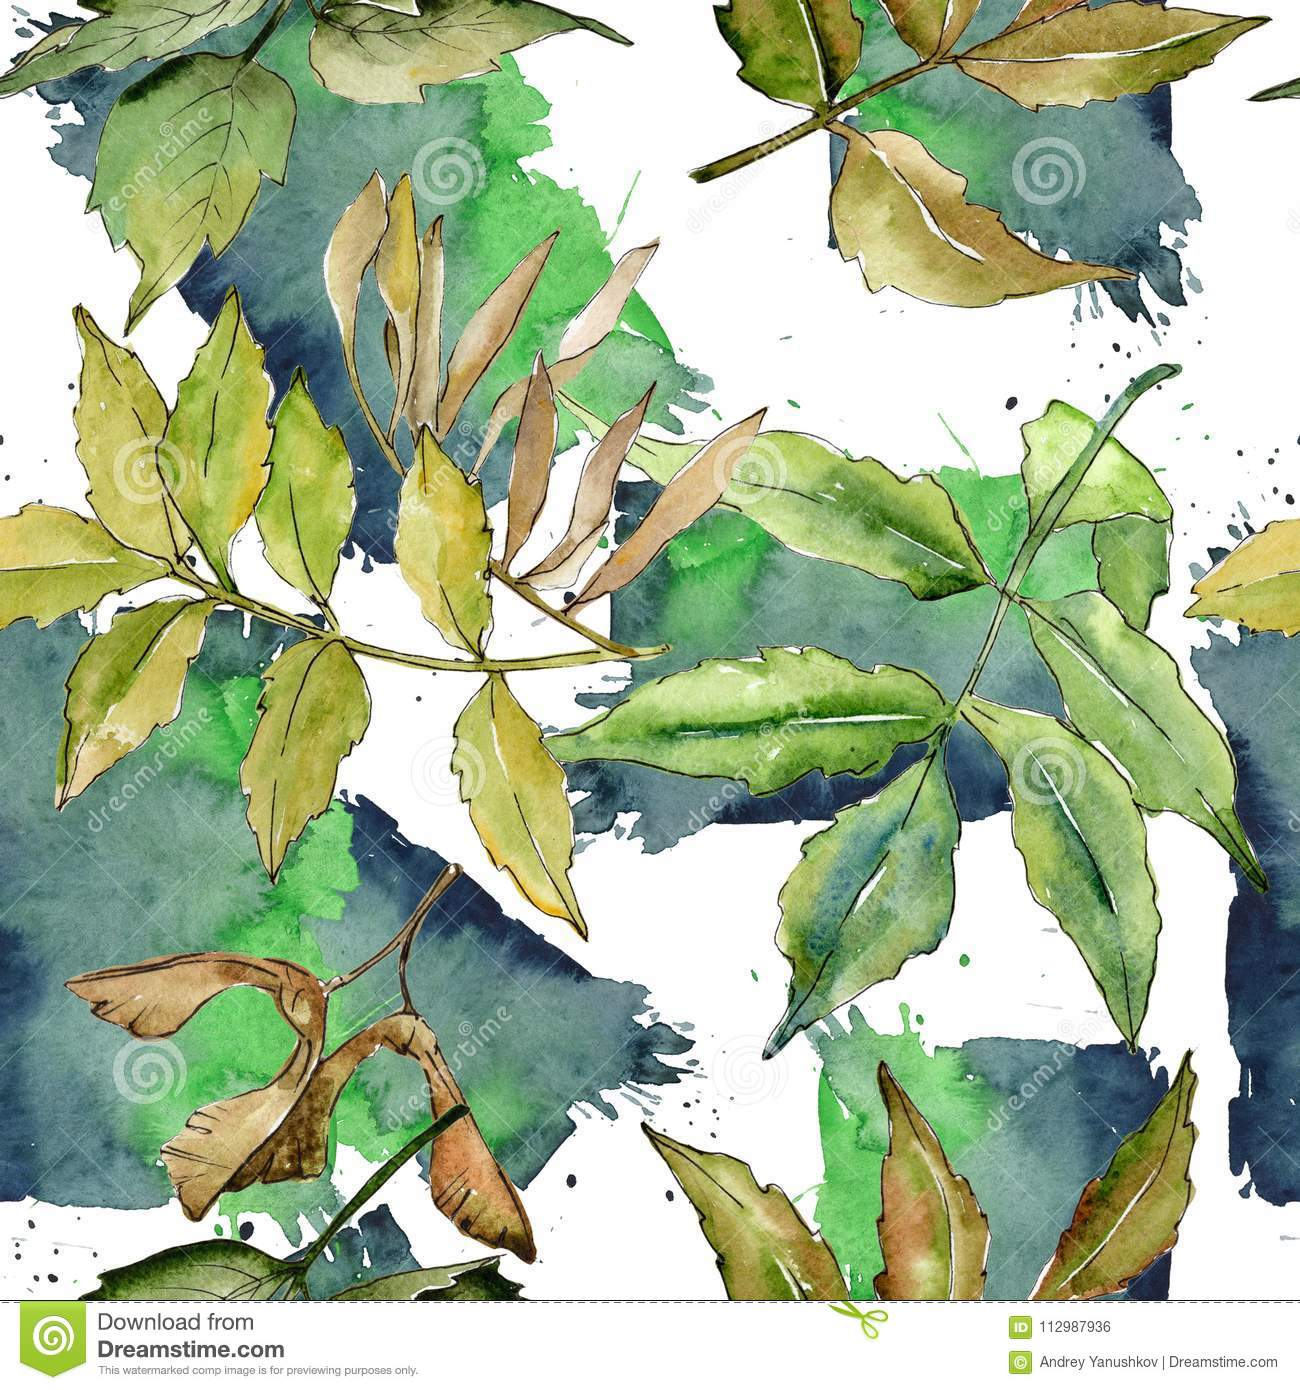 Ash leaves pattern in a watercolor style.